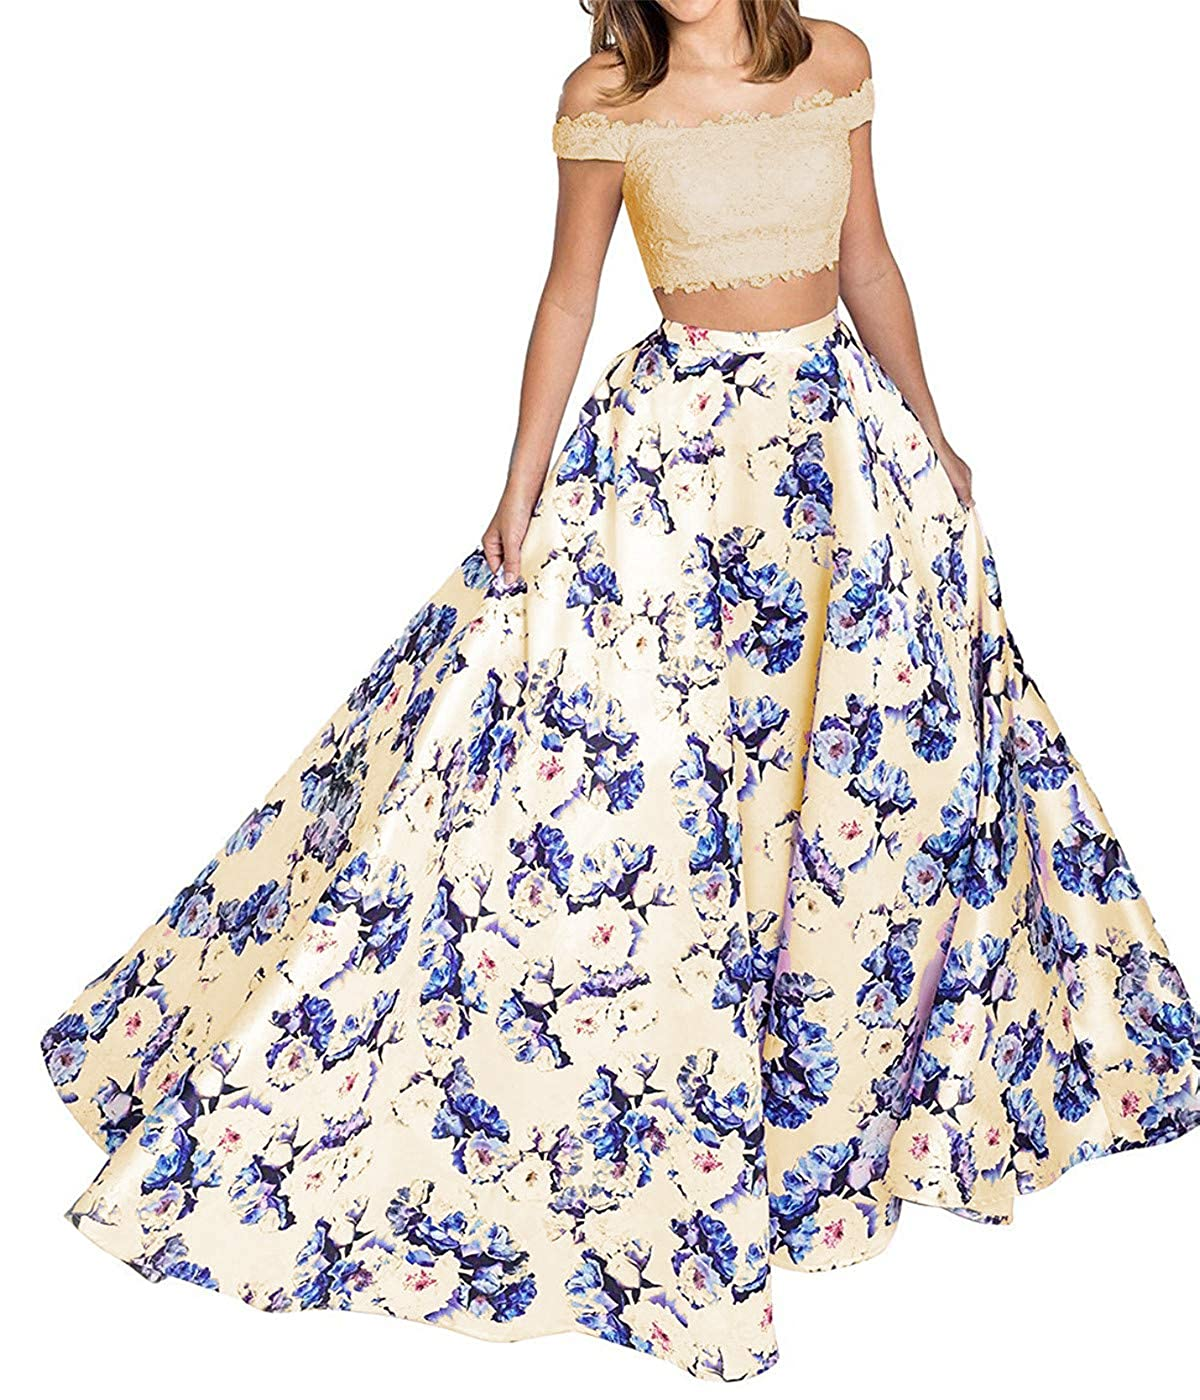 Champagne Sophie Women's 2 Piece Floral Printed Prom Dresses 2019 Long Formal Evening Ball Gowns S285